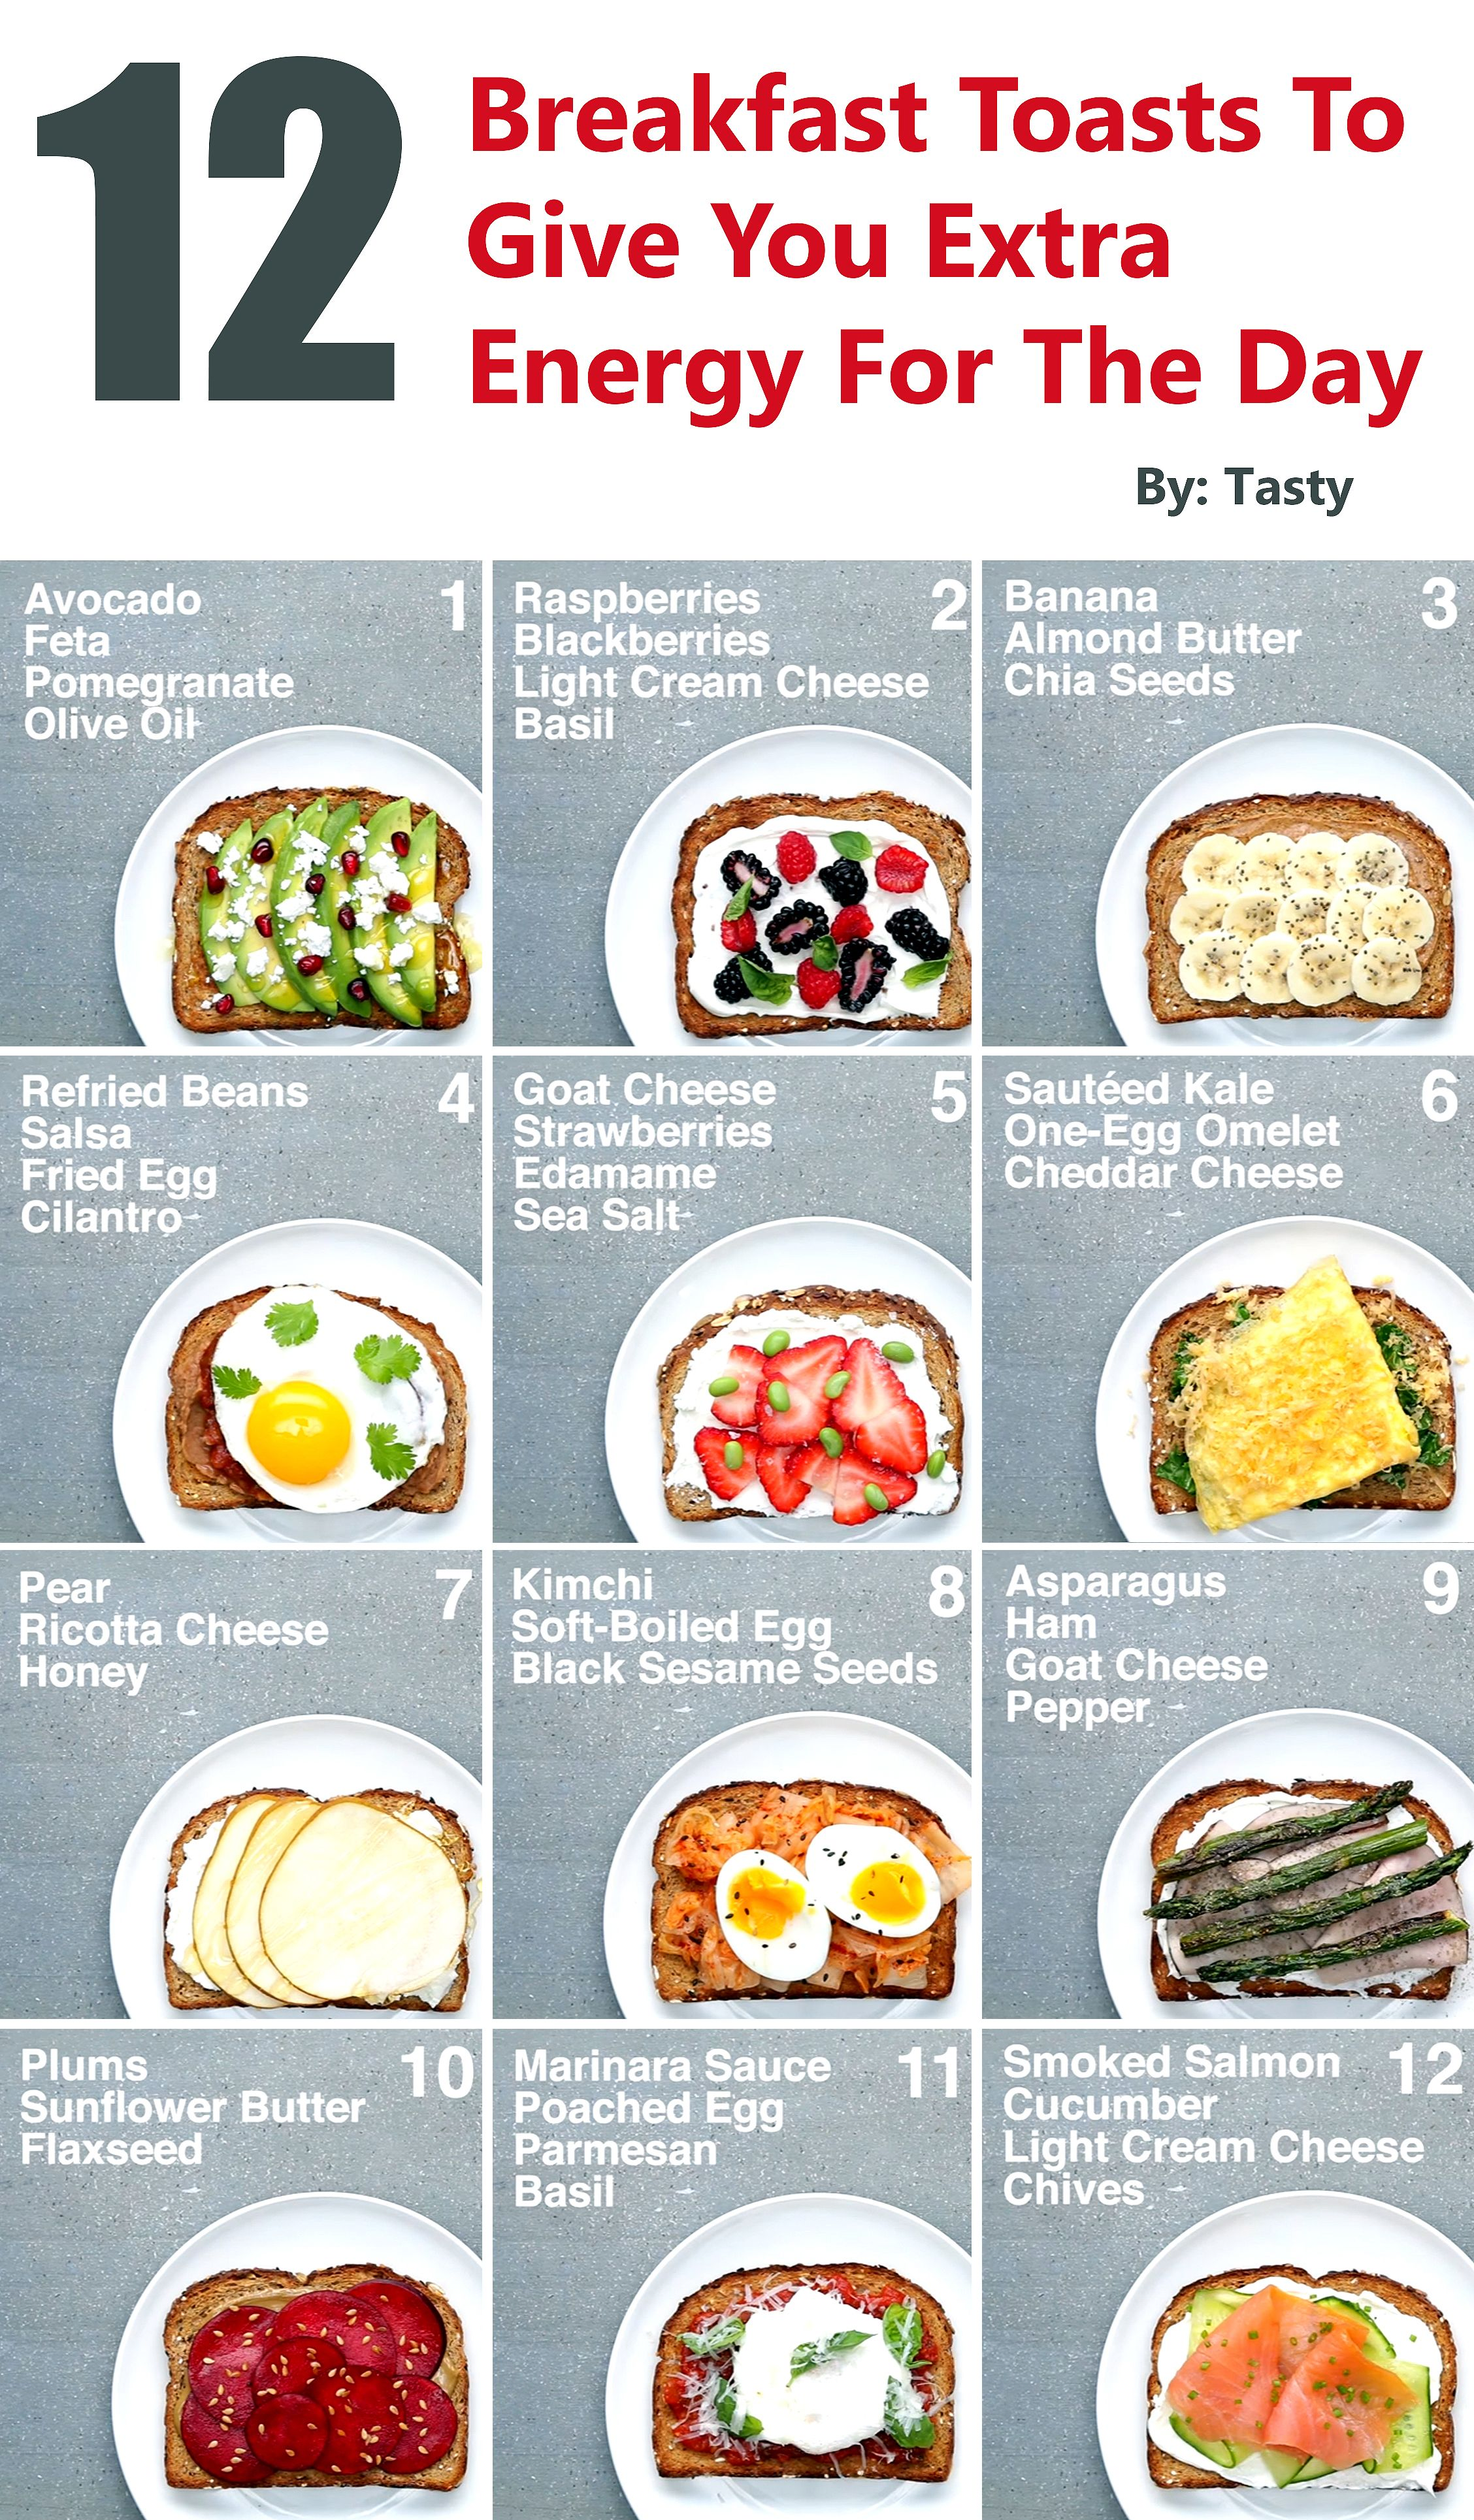 12 Breakfast Toasts To Give You Extra Energy For The Day Gwyl Io Healthy Breakfast Menu Healthy Breakfast Recipes Quick Healthy Breakfast